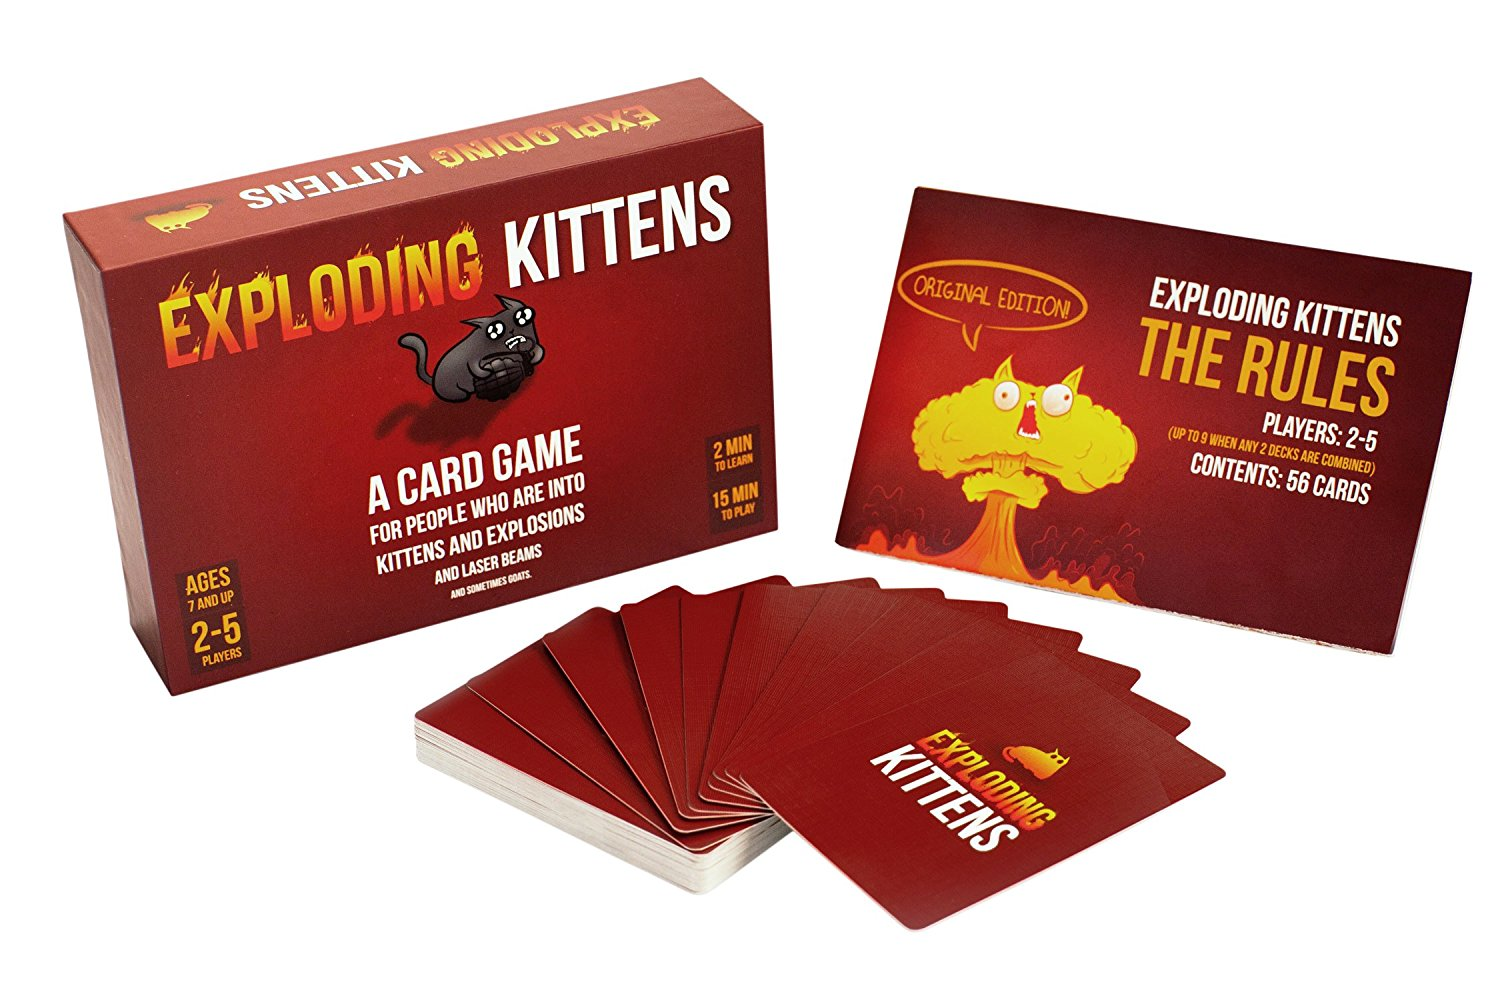 best card games party 2017 adultes exploding kittens   Walyou best card games party 2017 adultes exploding kittens